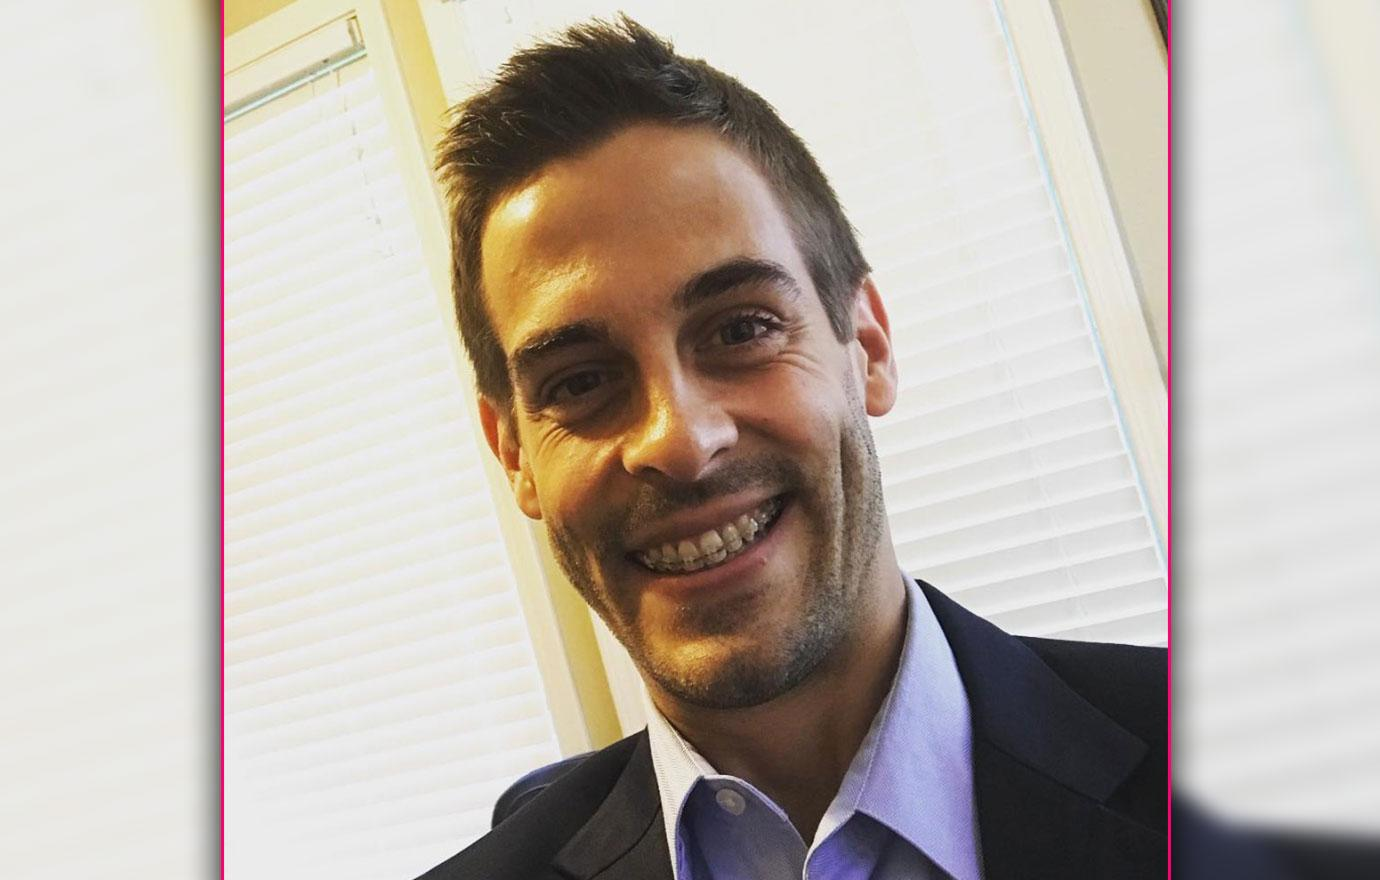 Unemployed Derick Dillard Brings His Kids To Law School